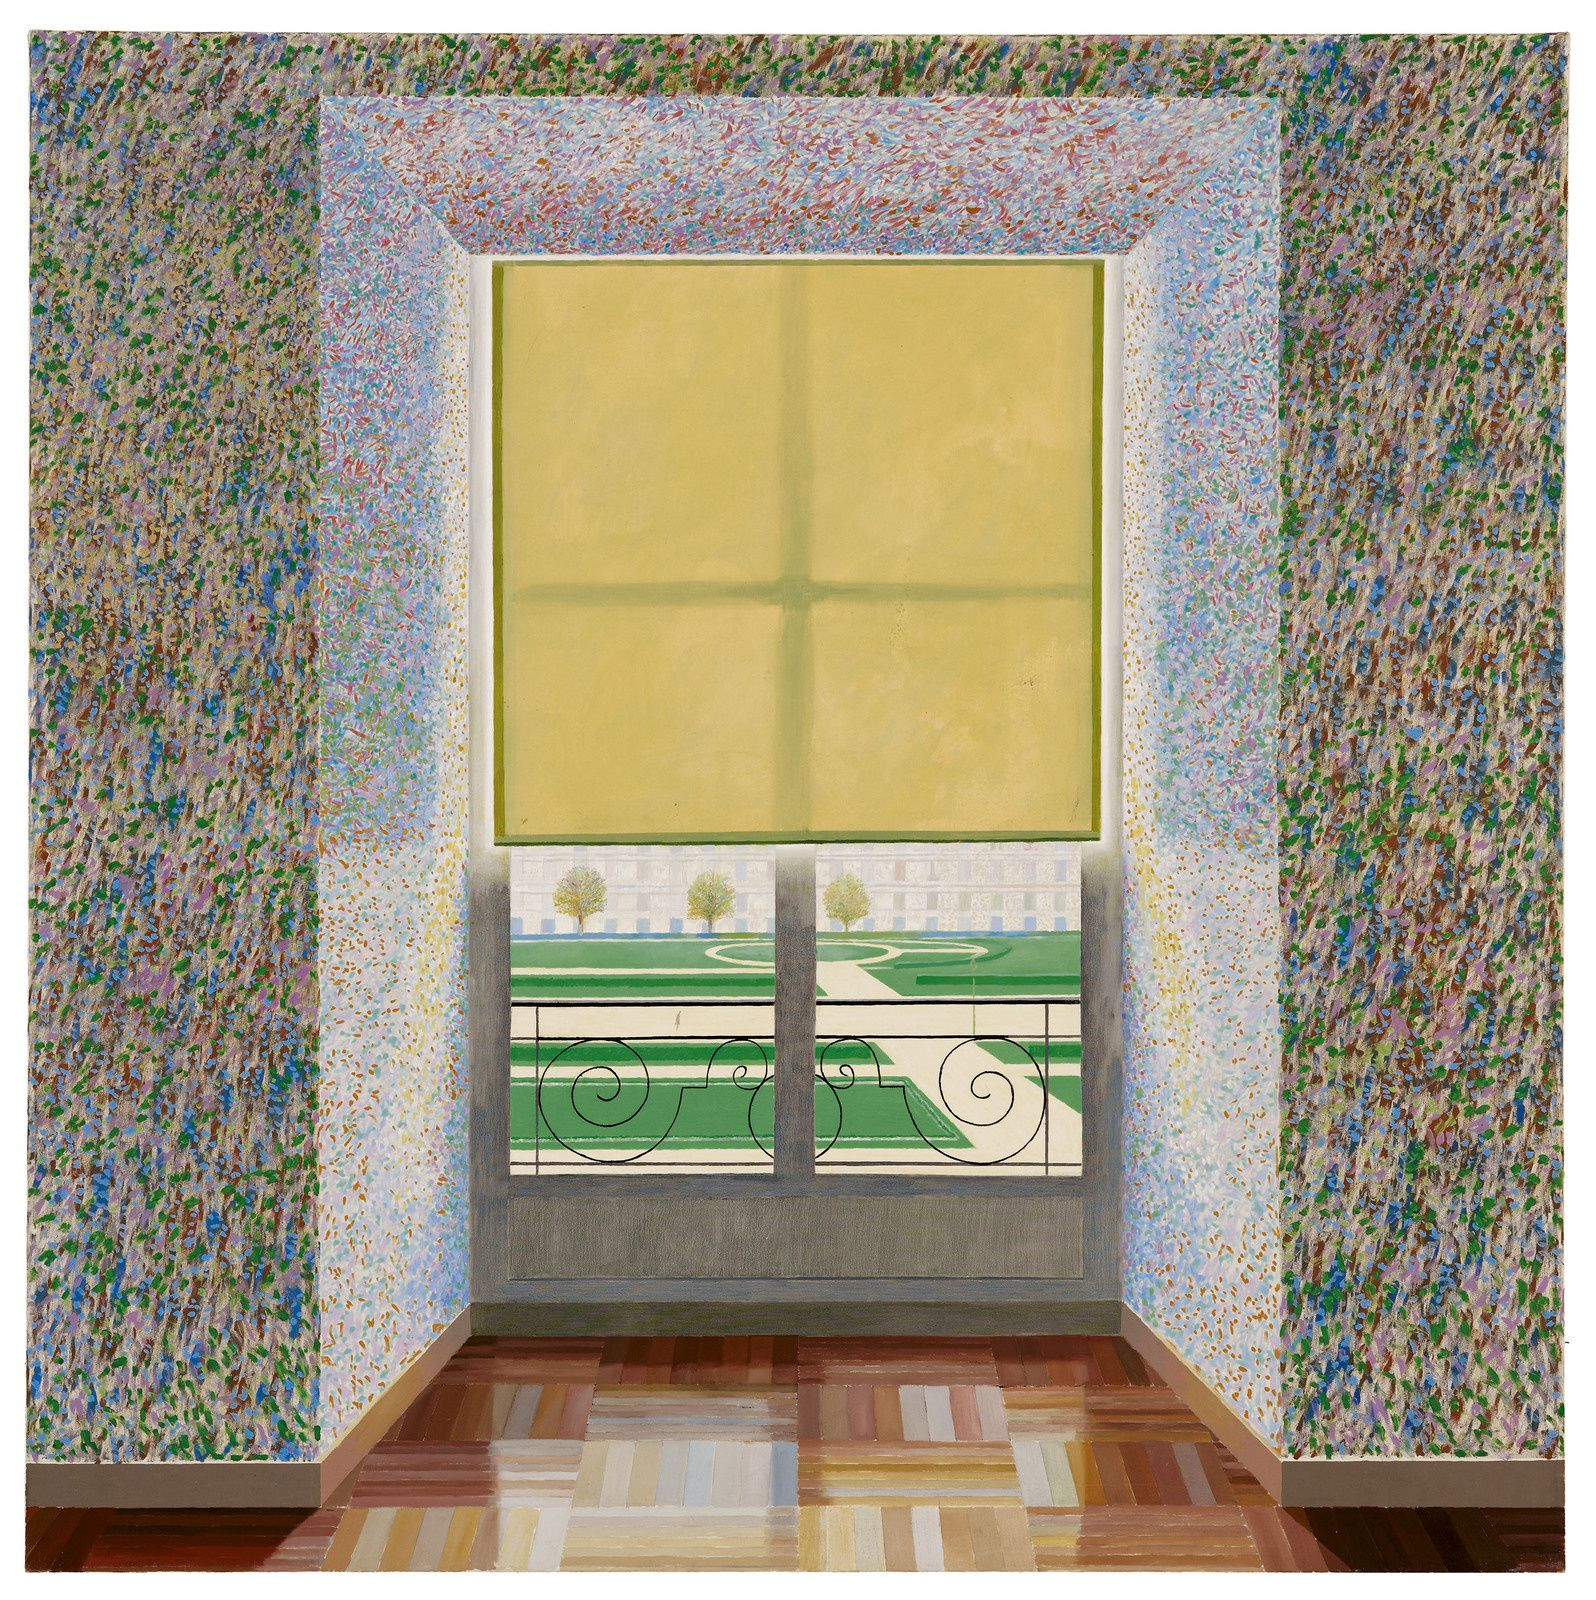 """Contre-jour in the French Style"", 1974 de David HOCKNEY - Courtesy Collection Ludwing Museum, Budapest"